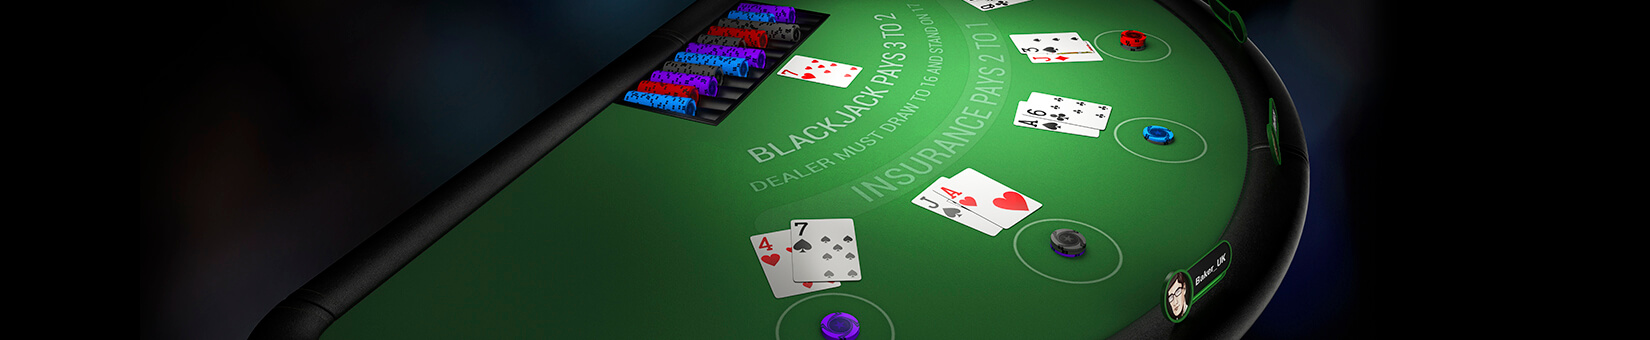 Blackjack heads up